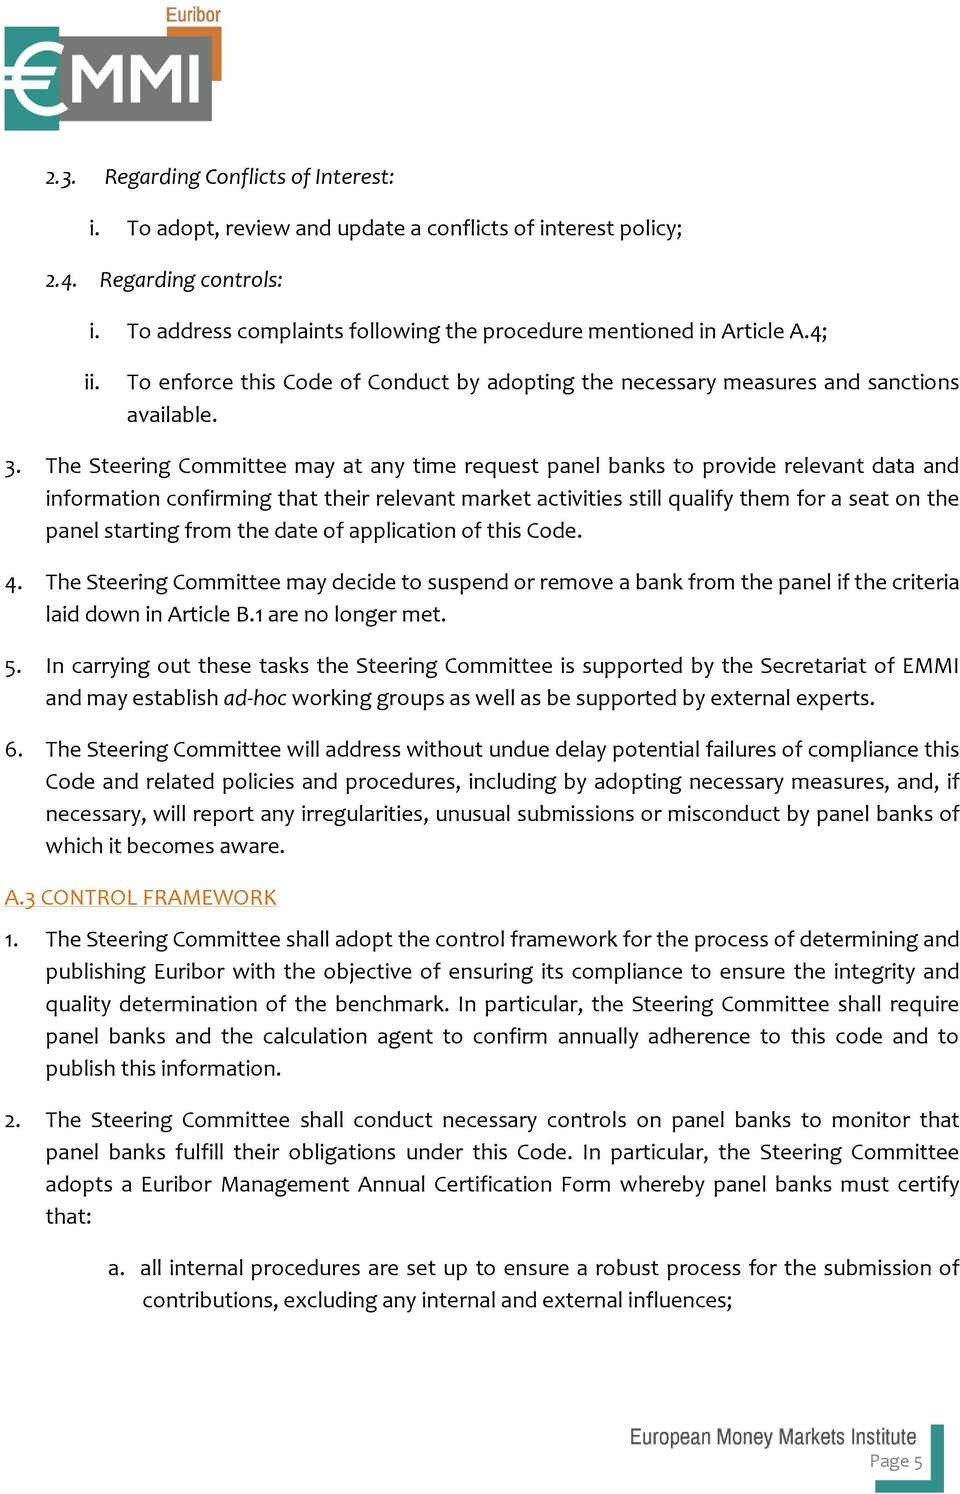 The Steering Committee may at any time request panel banks to provide relevant data and information confirming that their relevant market activities still qualify them for a seat on the panel